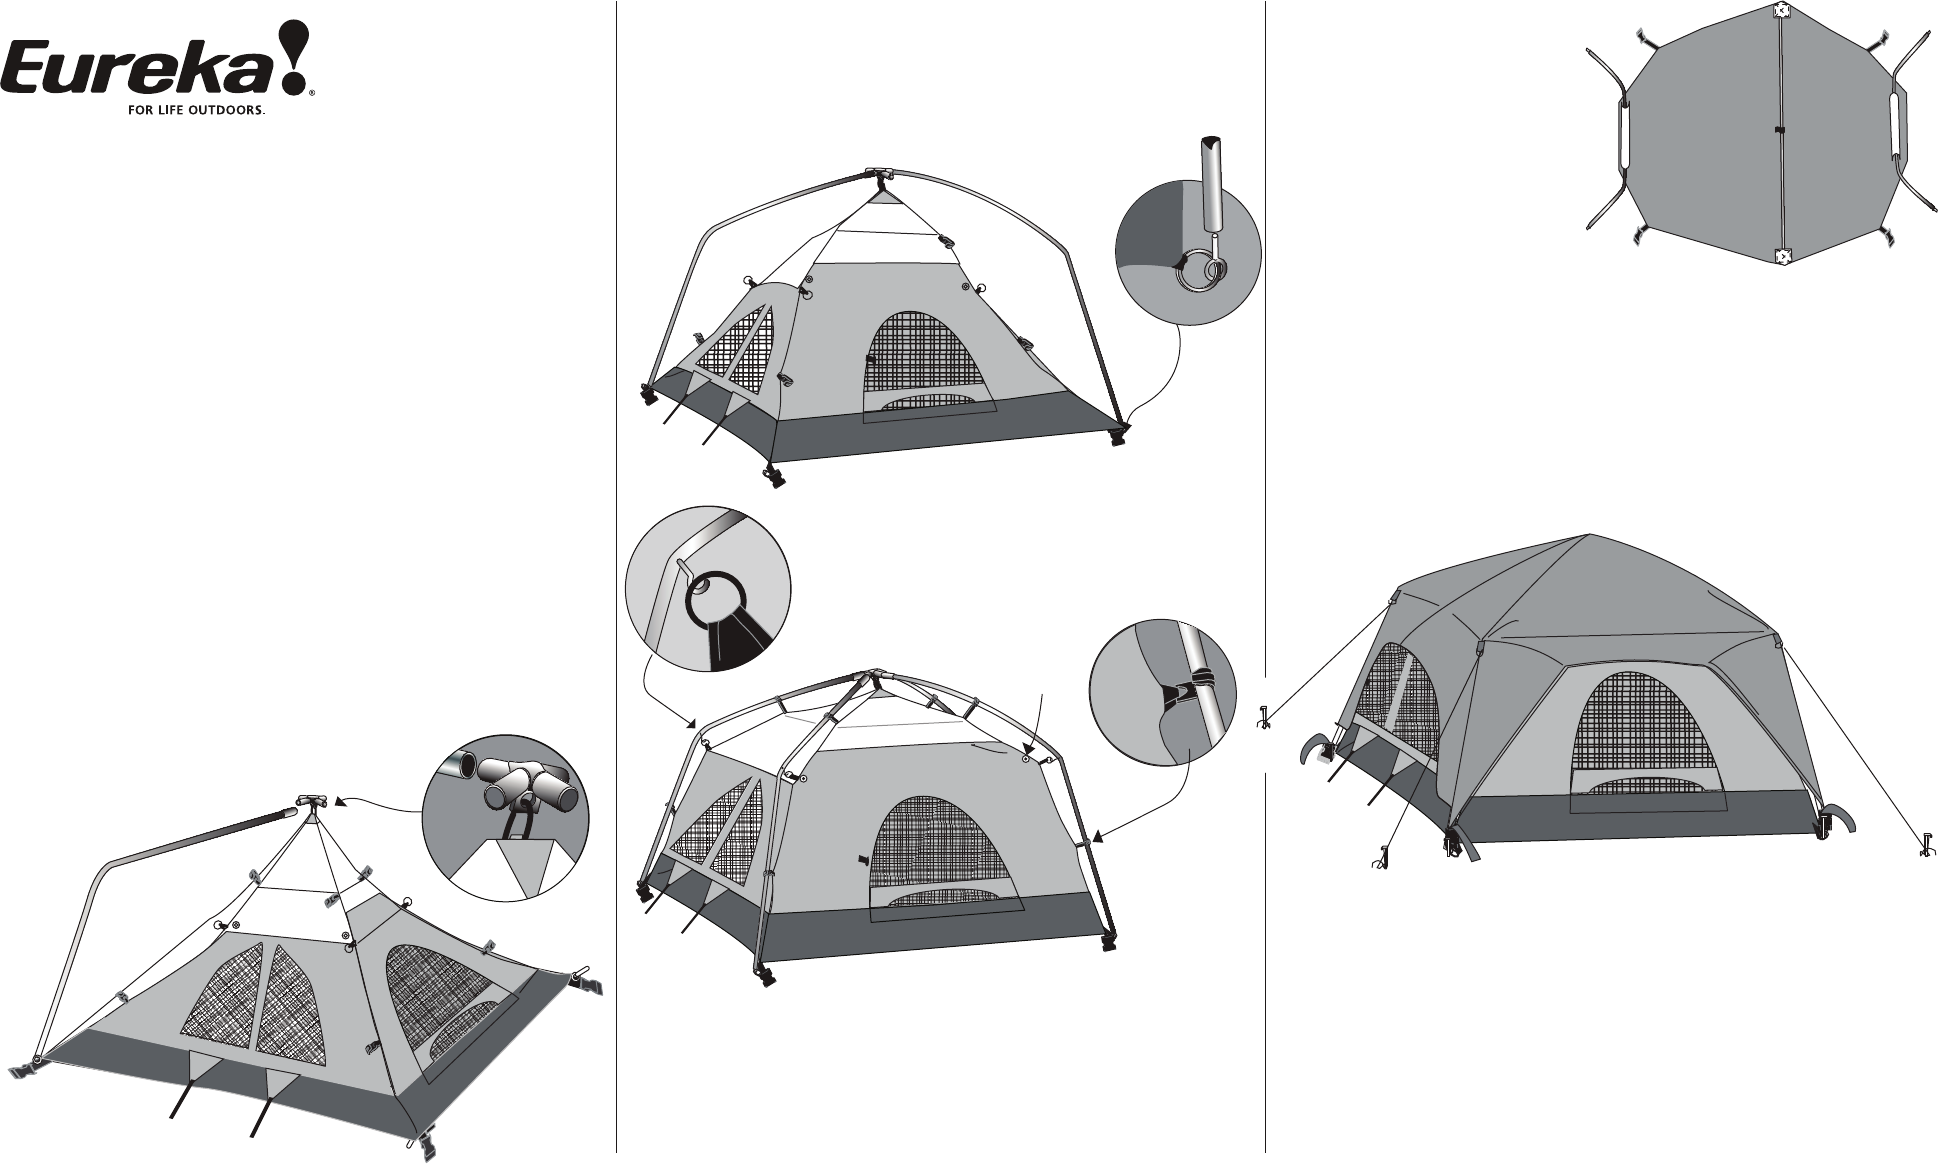 Tents Titan Tent User Manual  sc 1 st  Camera Manuals - ManualsOnline.com & Eureka! Tents Tent Titan User Guide | ManualsOnline.com